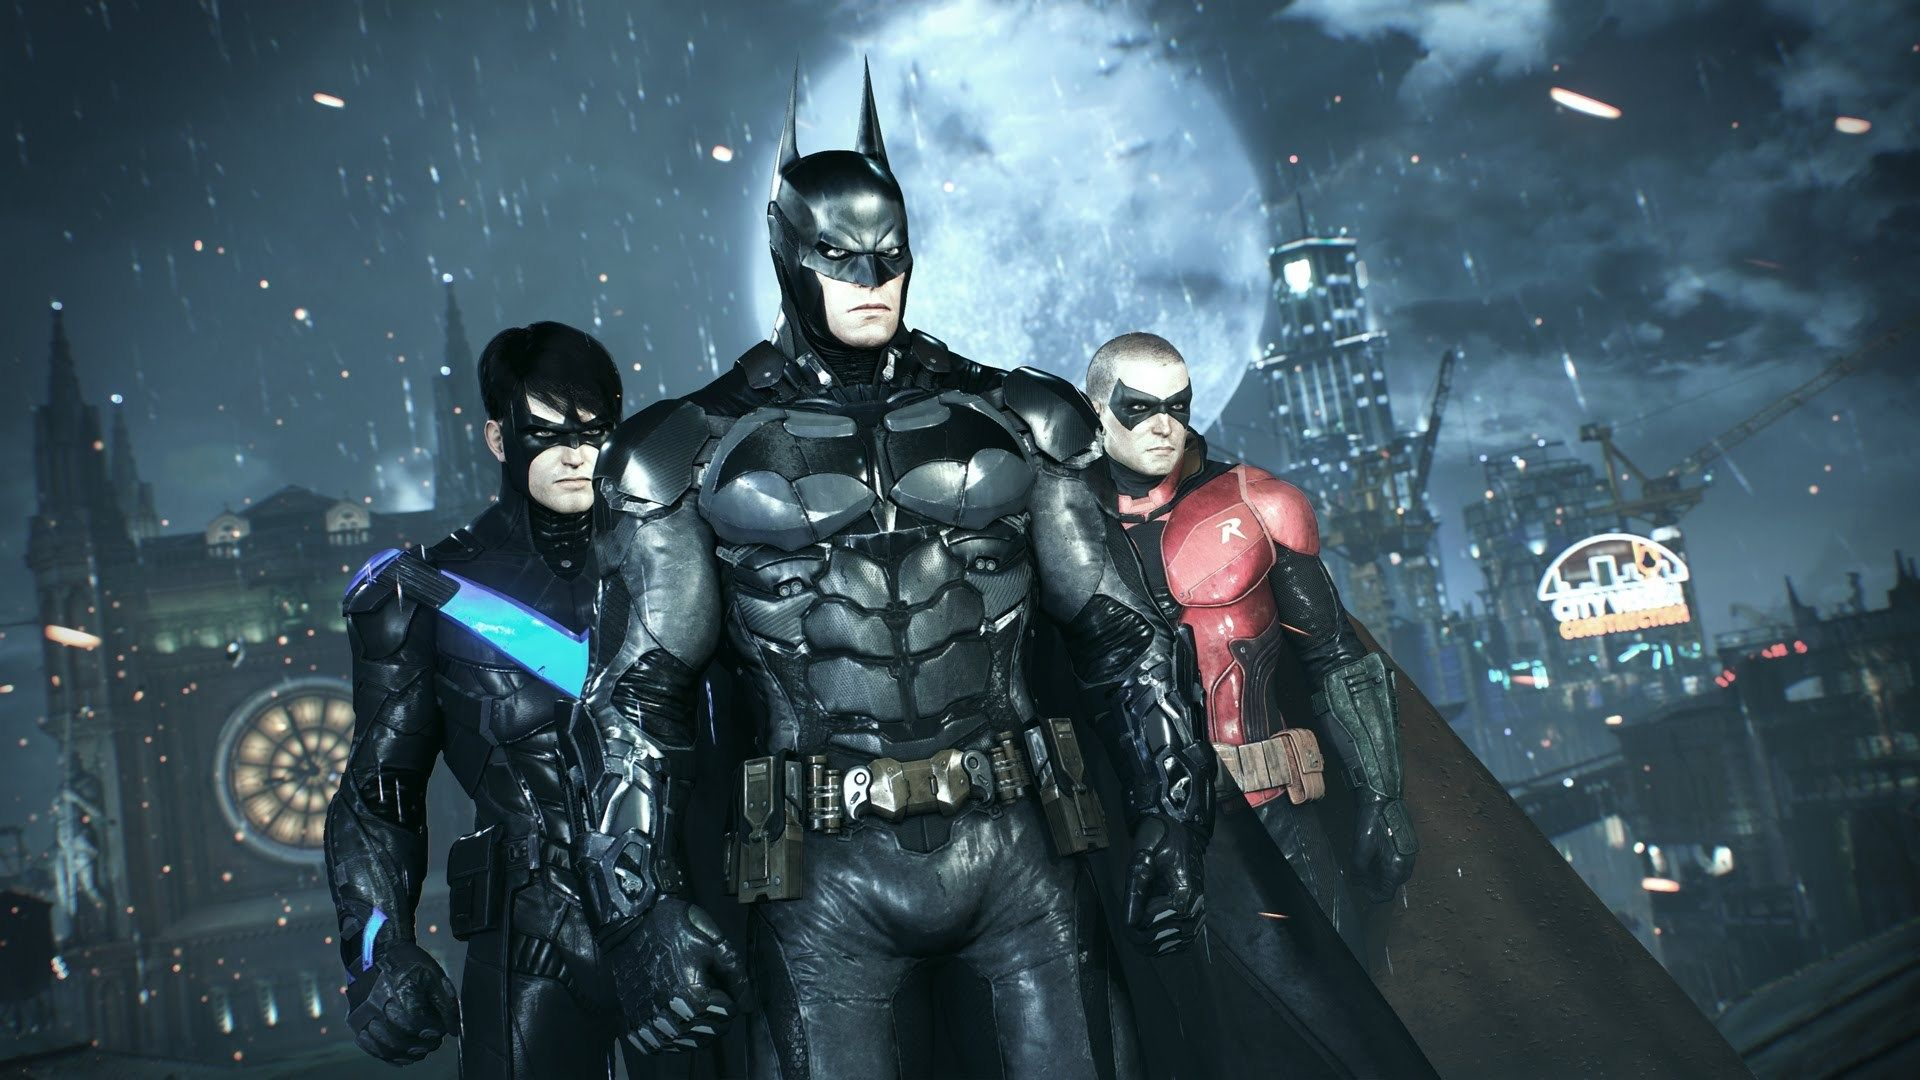 Hd Wallpaper Batman Arkham Knight Batman Arkham Knight Batman